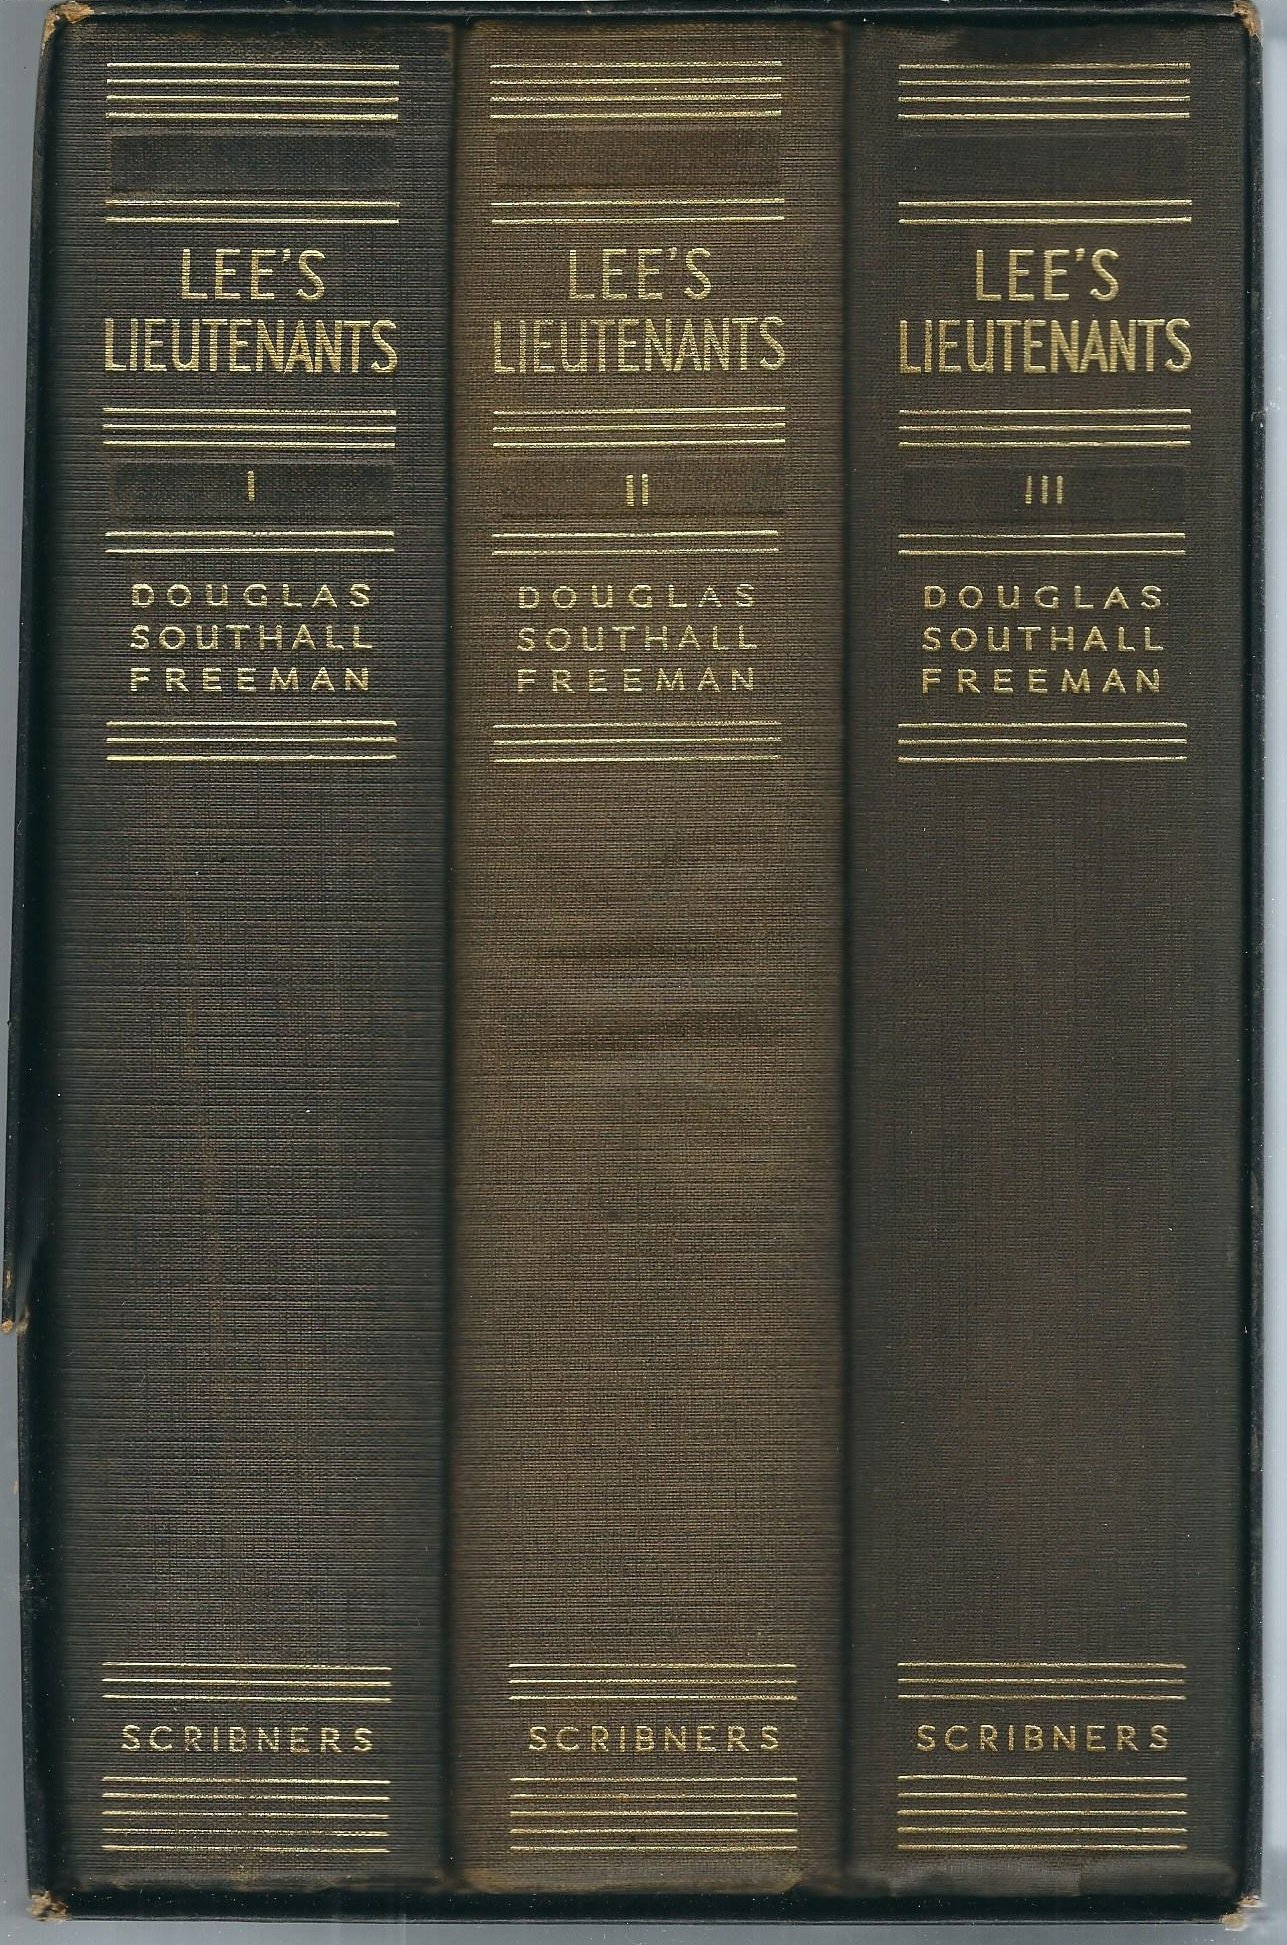 Lee's Lieutenants: A Study in Command (3 Volume Set), Douglas Southall Freeman